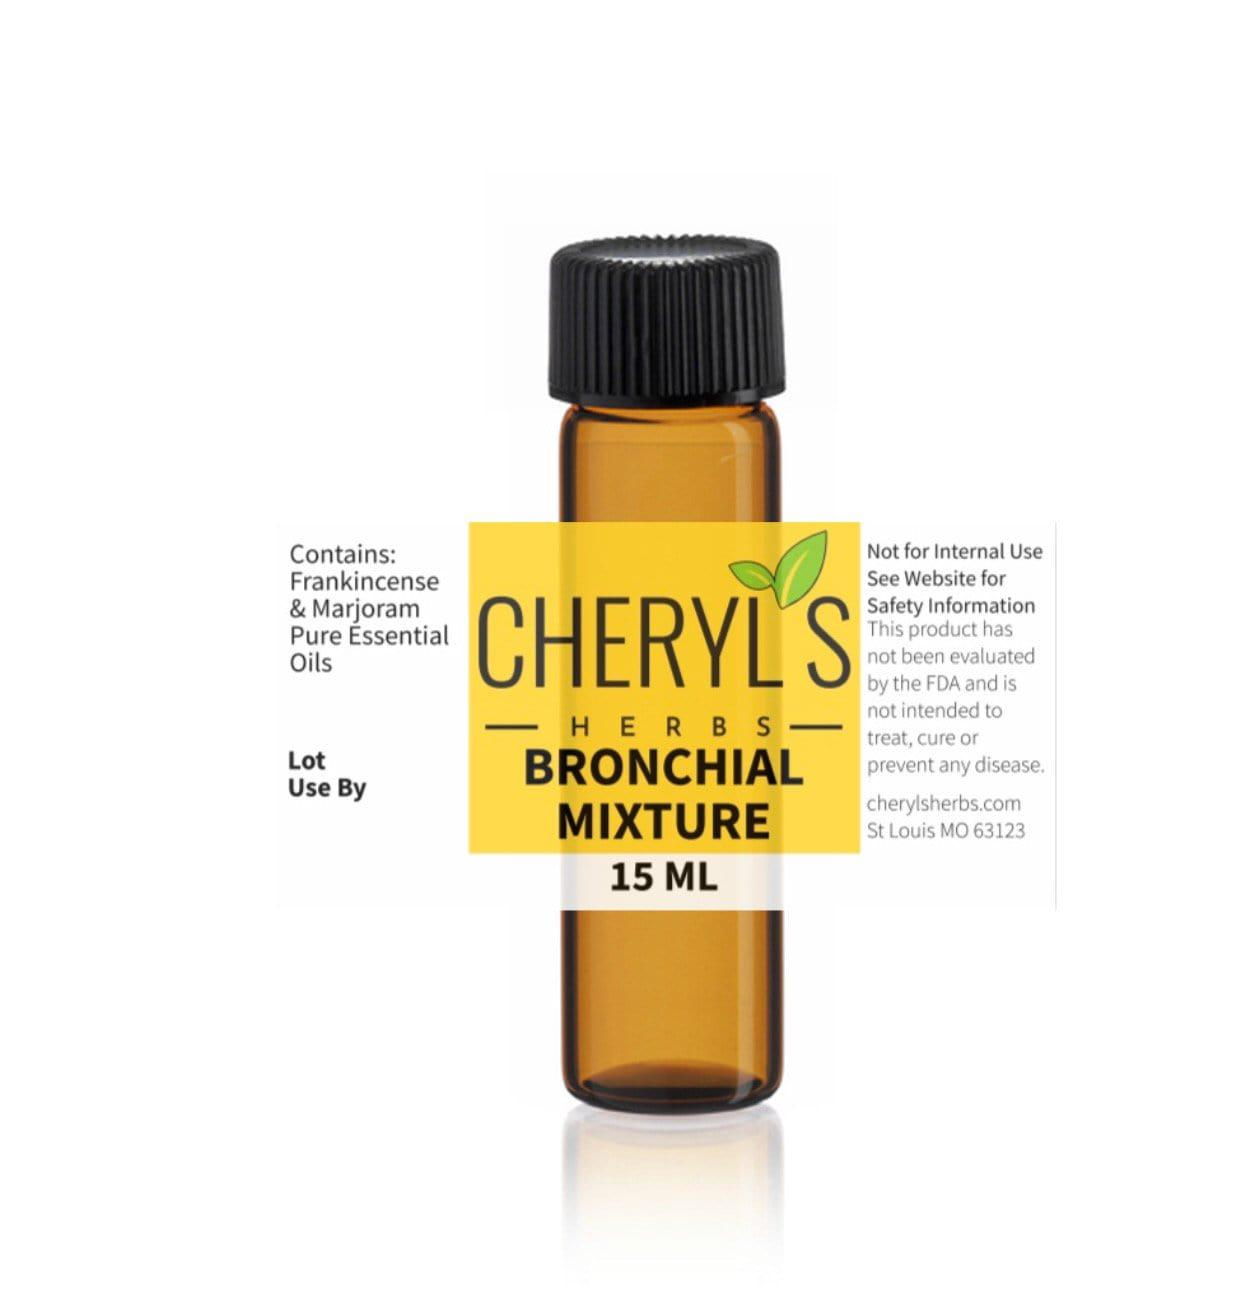 BRONCHIAL MIXTURE - Cheryls Herbs